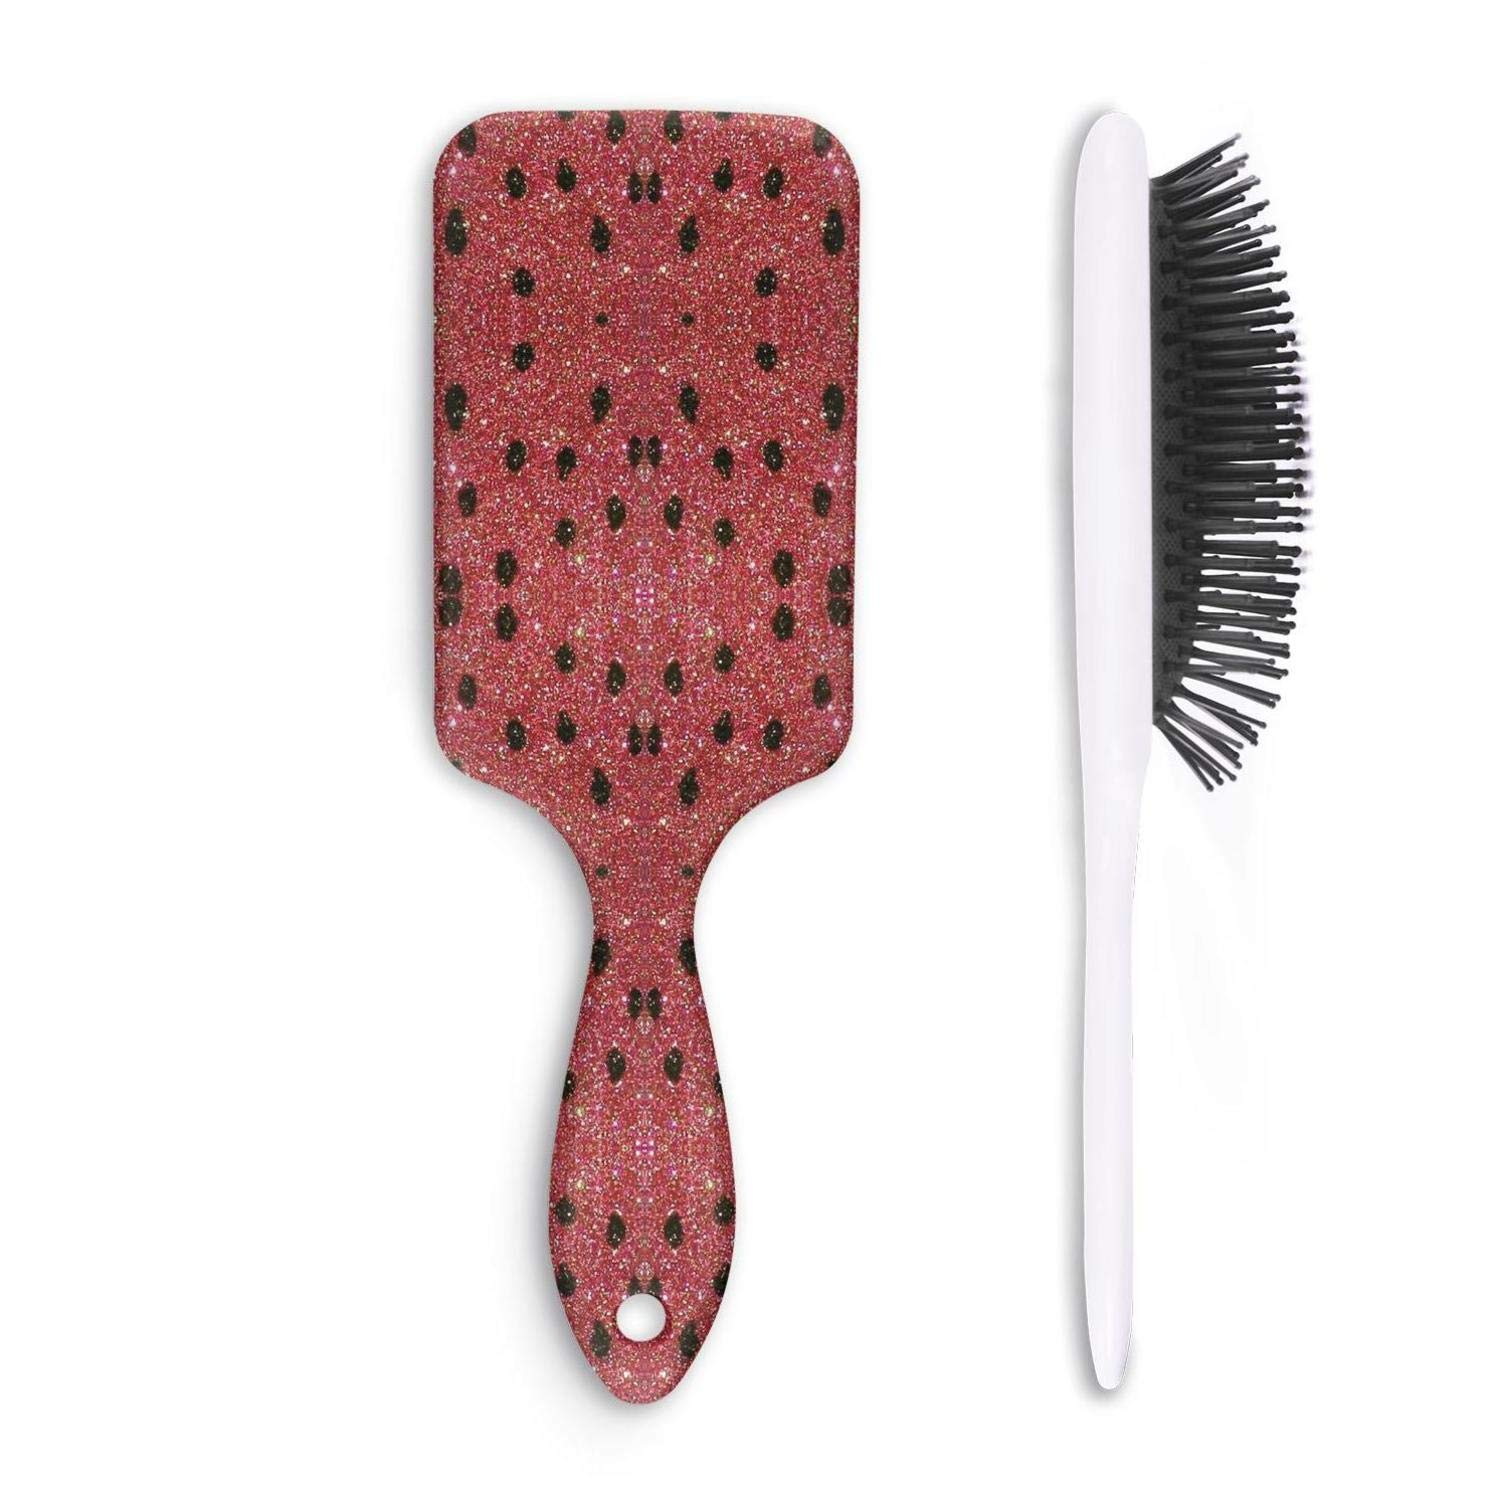 Beauty Women And Men Grooming Styling Wet & Dry Watermelon seeds Professional Straighte Cushion Hair Brush